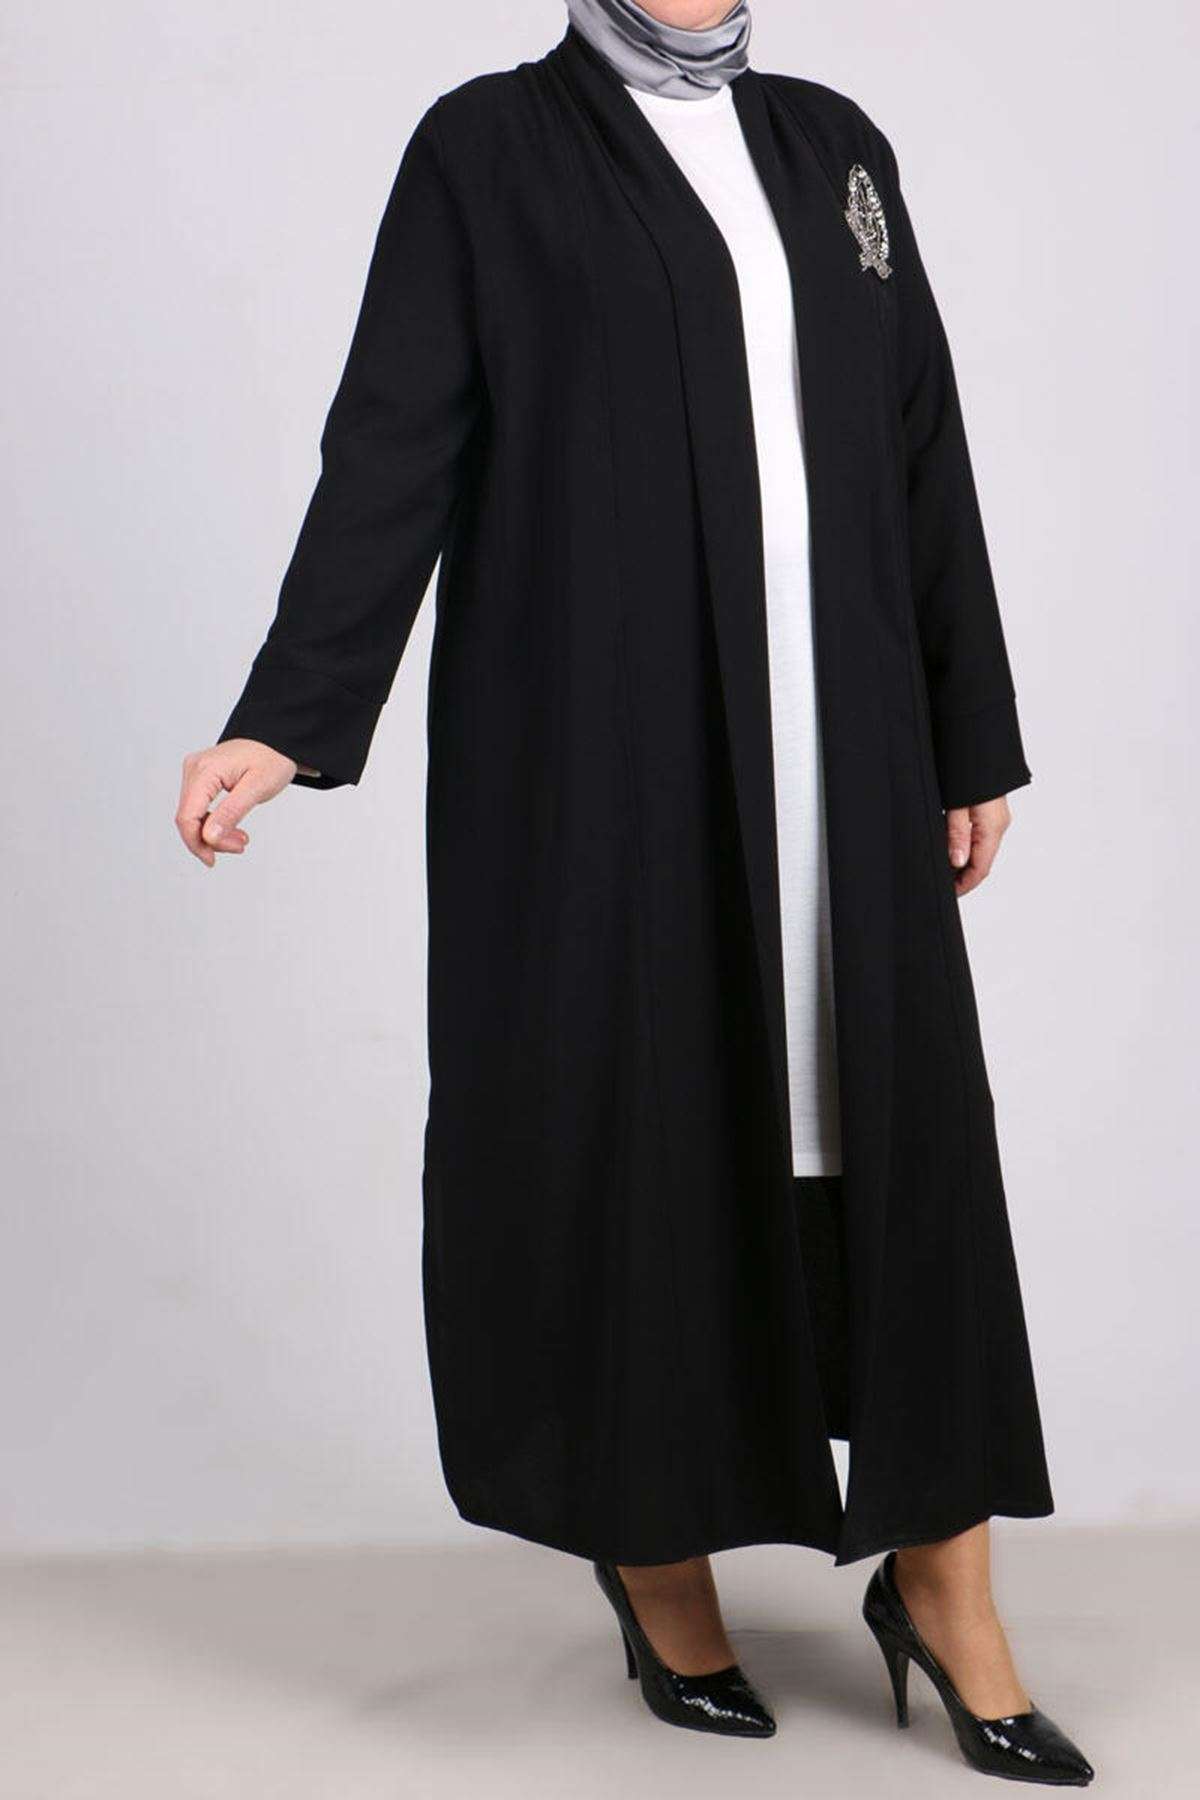 7110 Plus Size Two Piece Set with Tunic and Jacket- Black